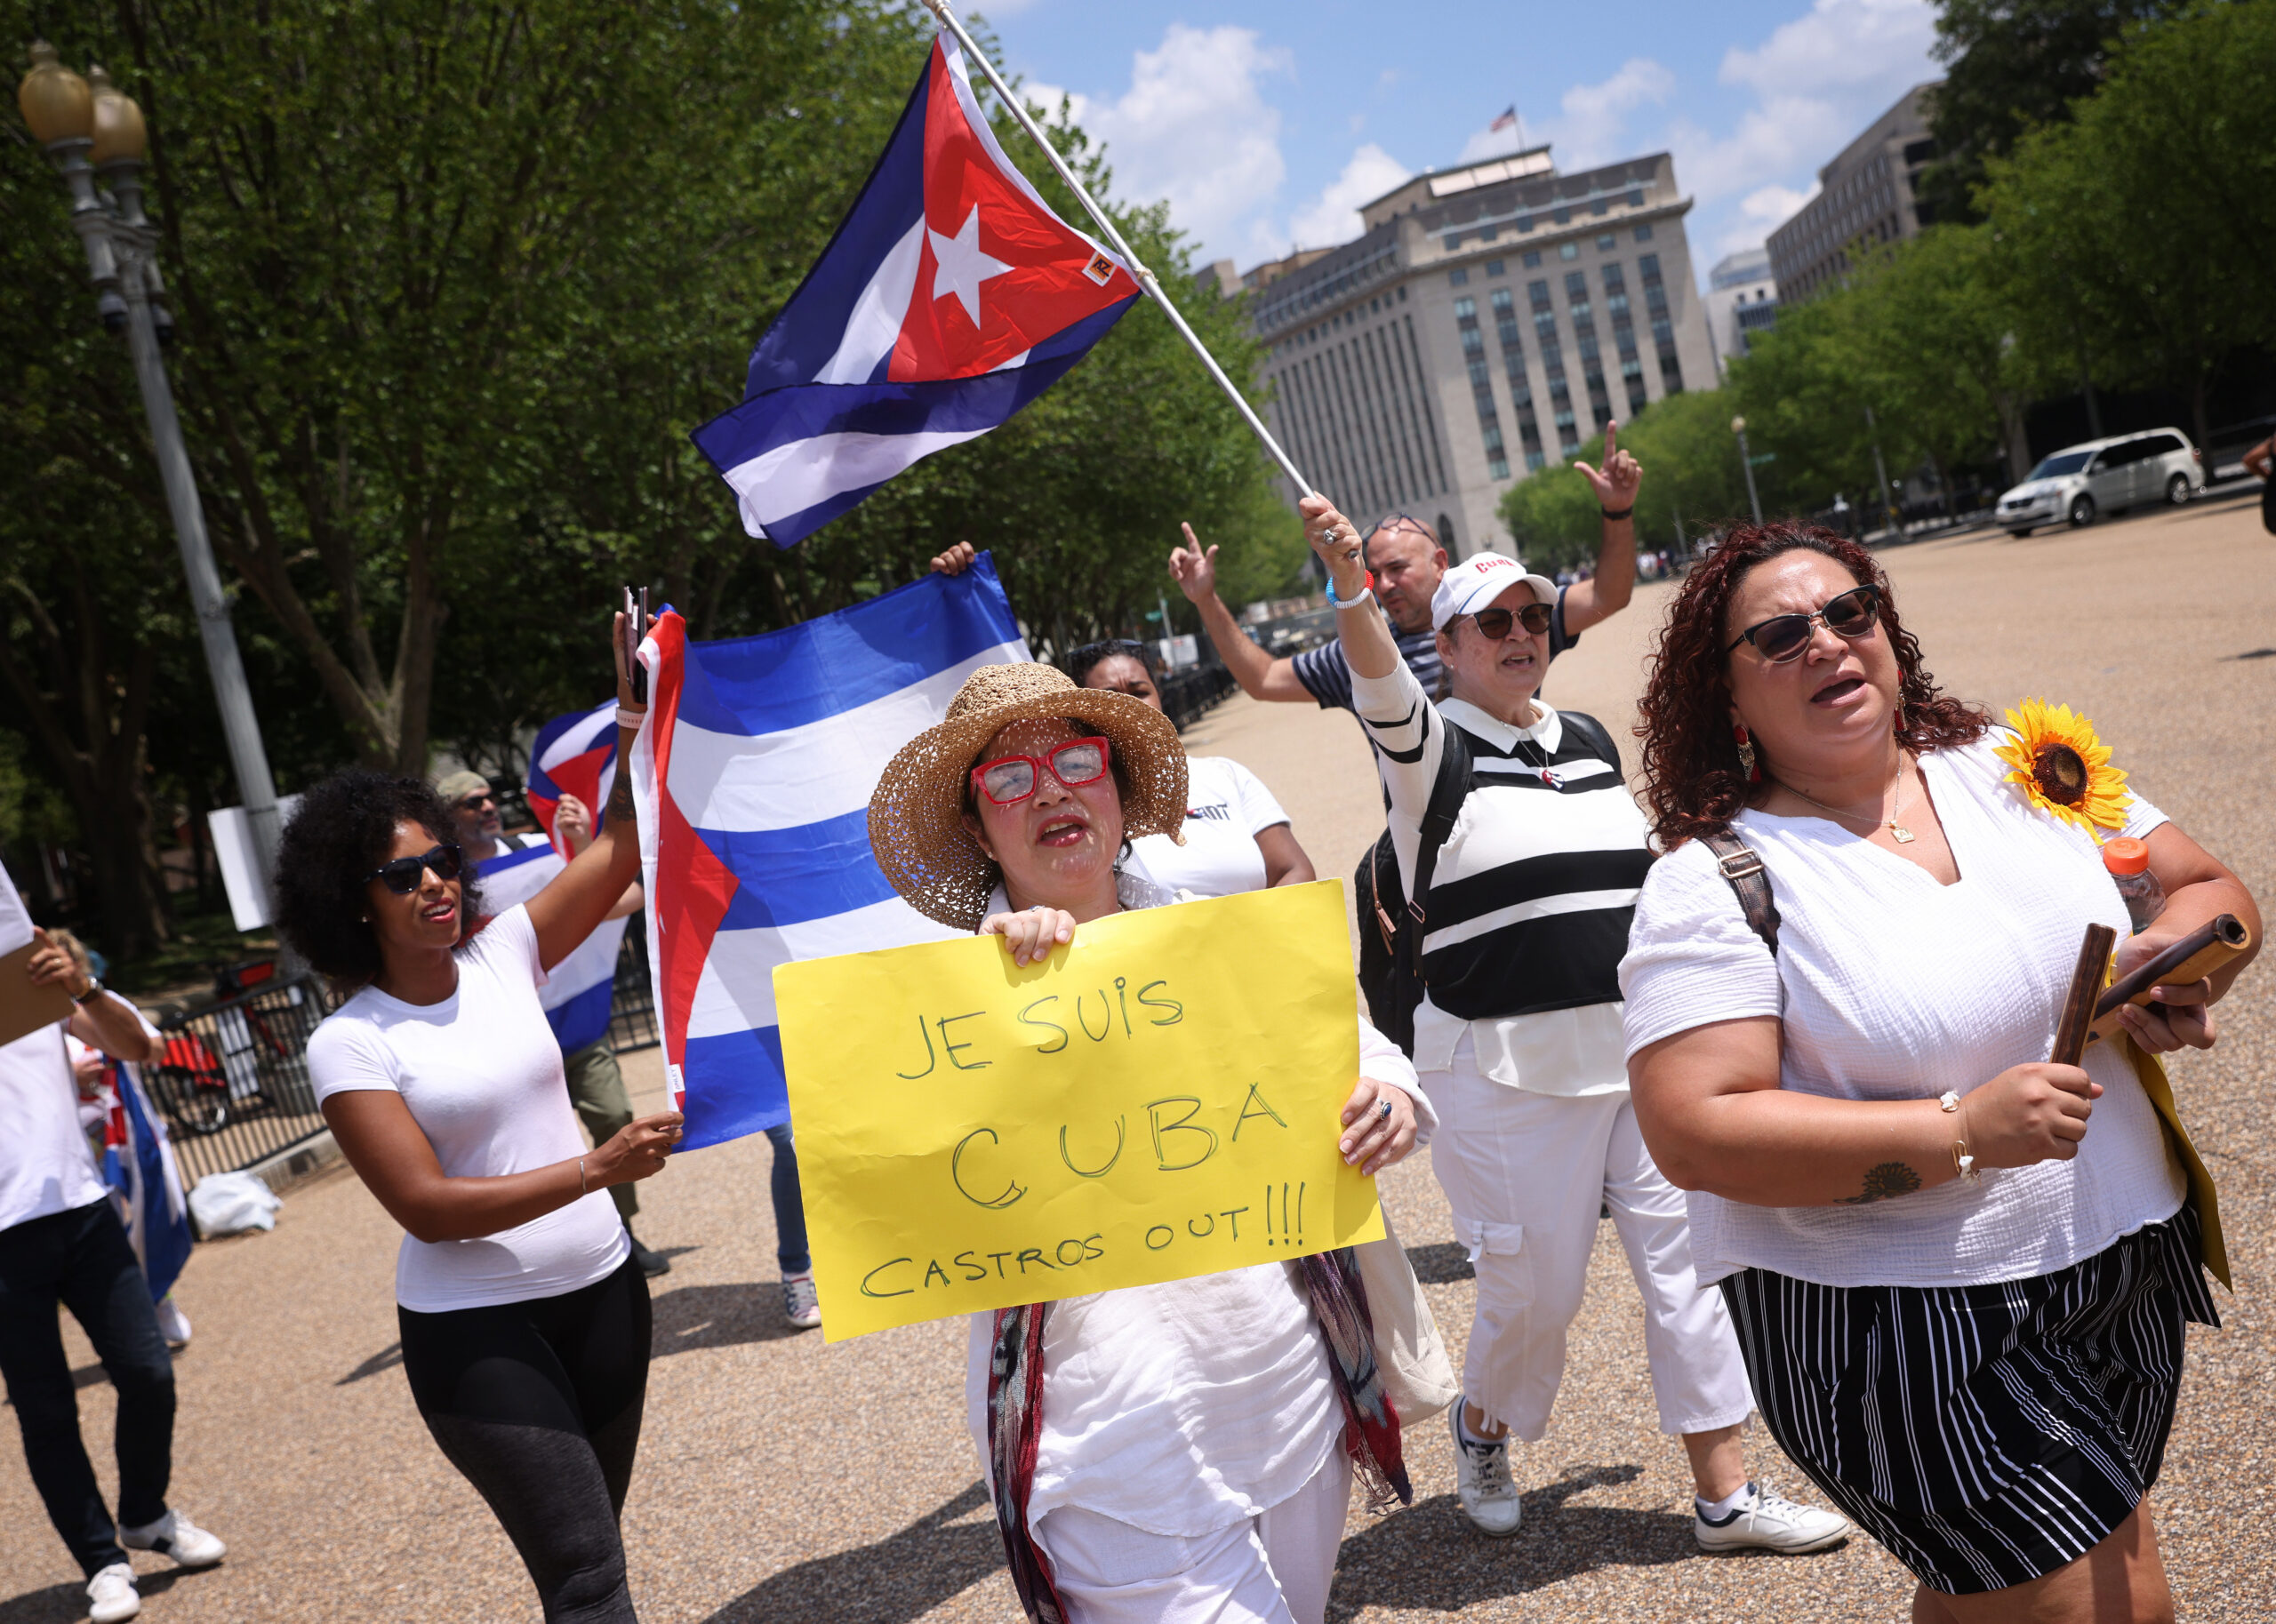 What Is Behind Cuba's Unprecedented Protest? The Internet's Role In The Unrest